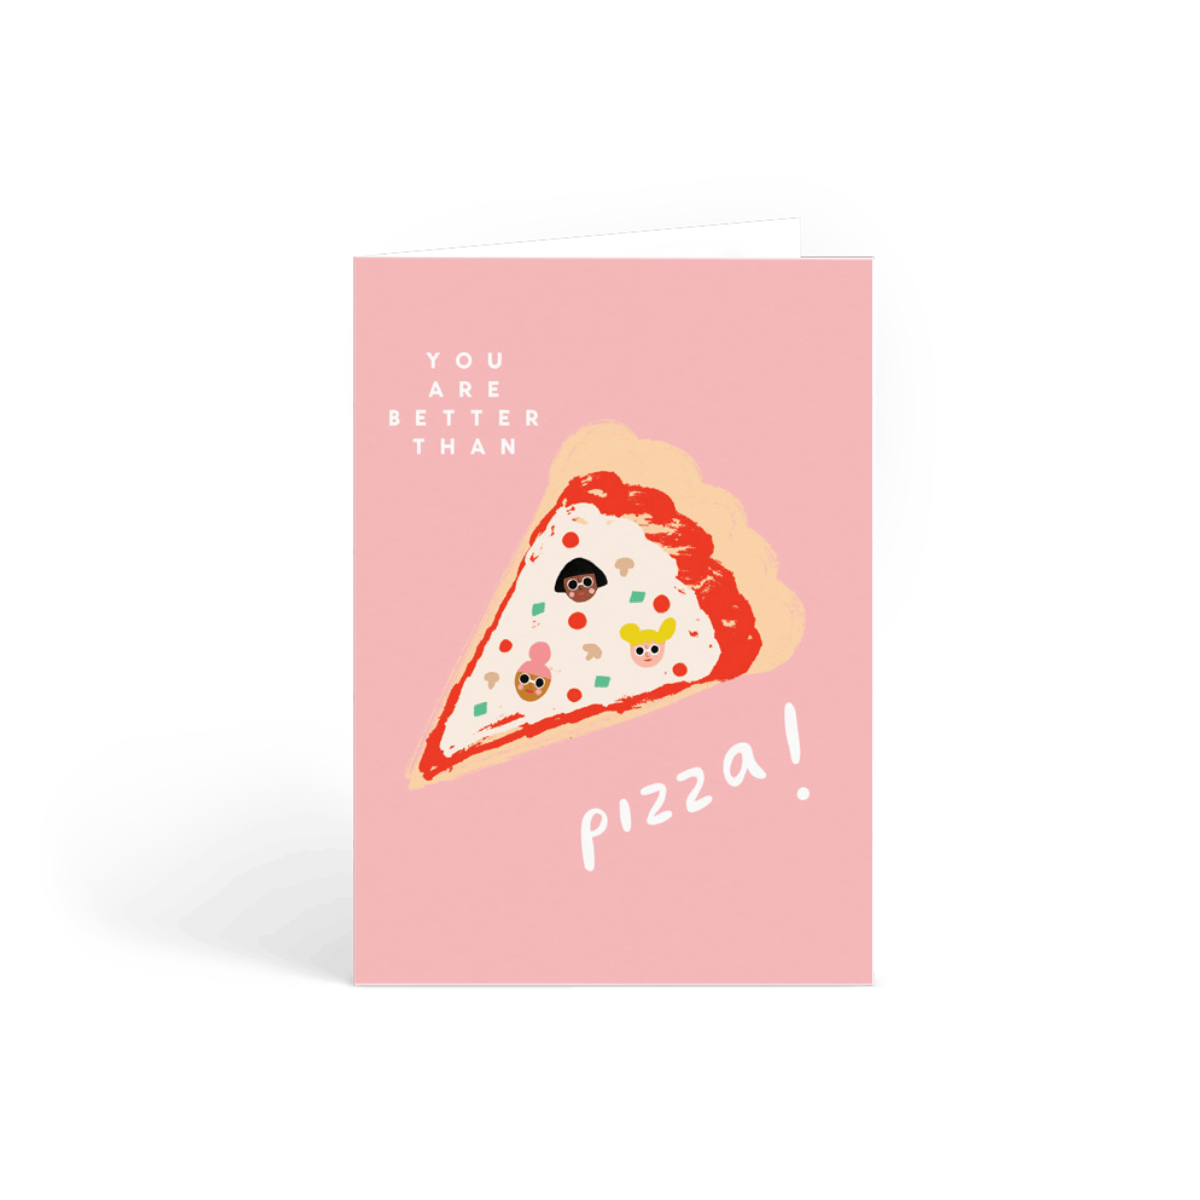 Https%3a%2f%2fwww.papier.com%2fproduct image%2f47394%2f2%2fbetter than pizza 11625 vorderseite 1537893903.png?ixlib=rb 1.1